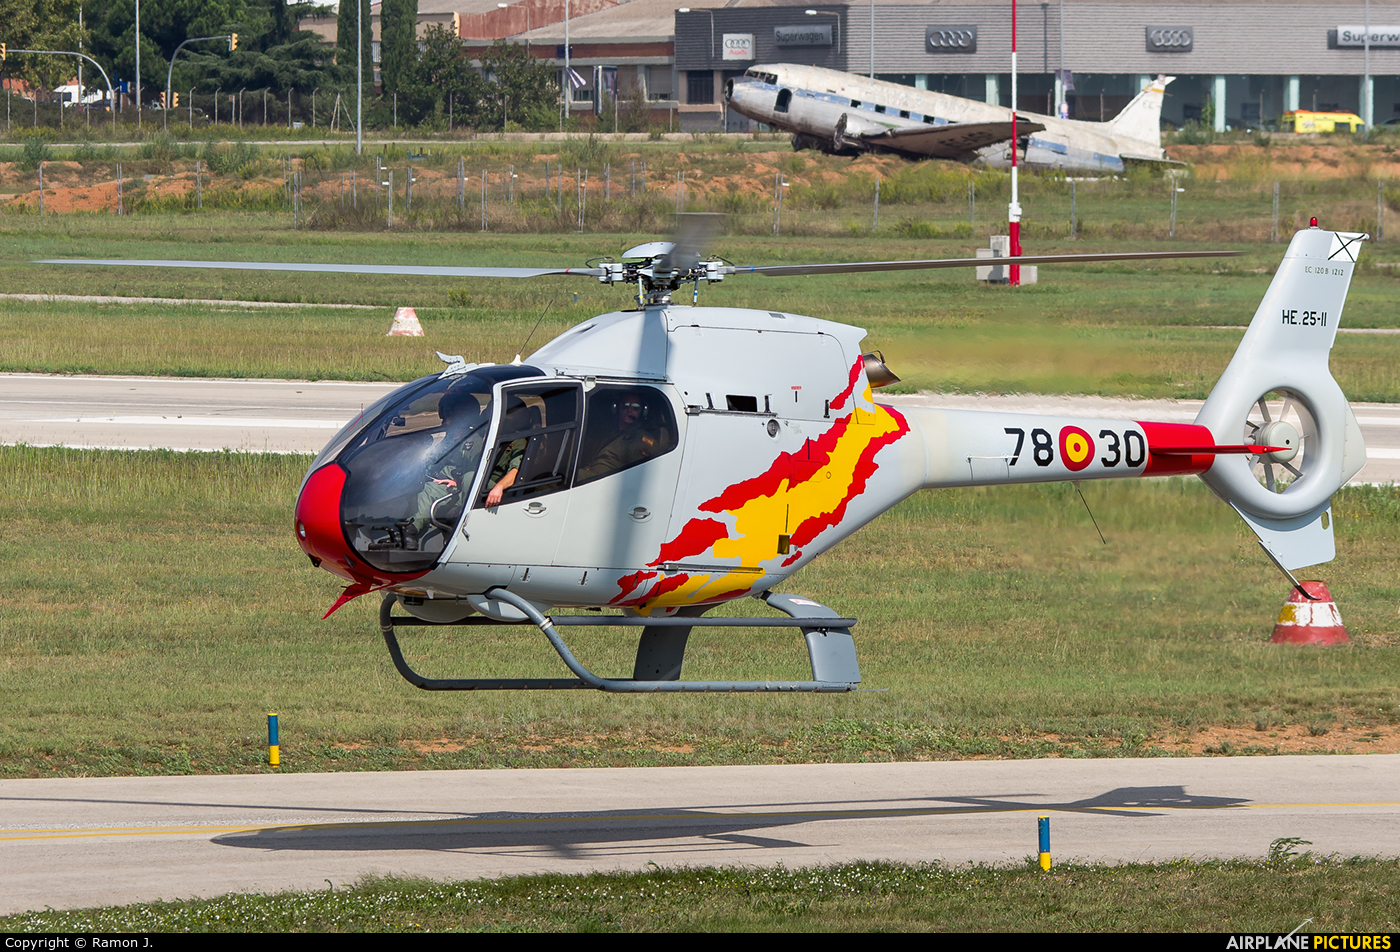 Spain - Air Force: Patrulla ASPA HE.25-11 aircraft at Sabadell